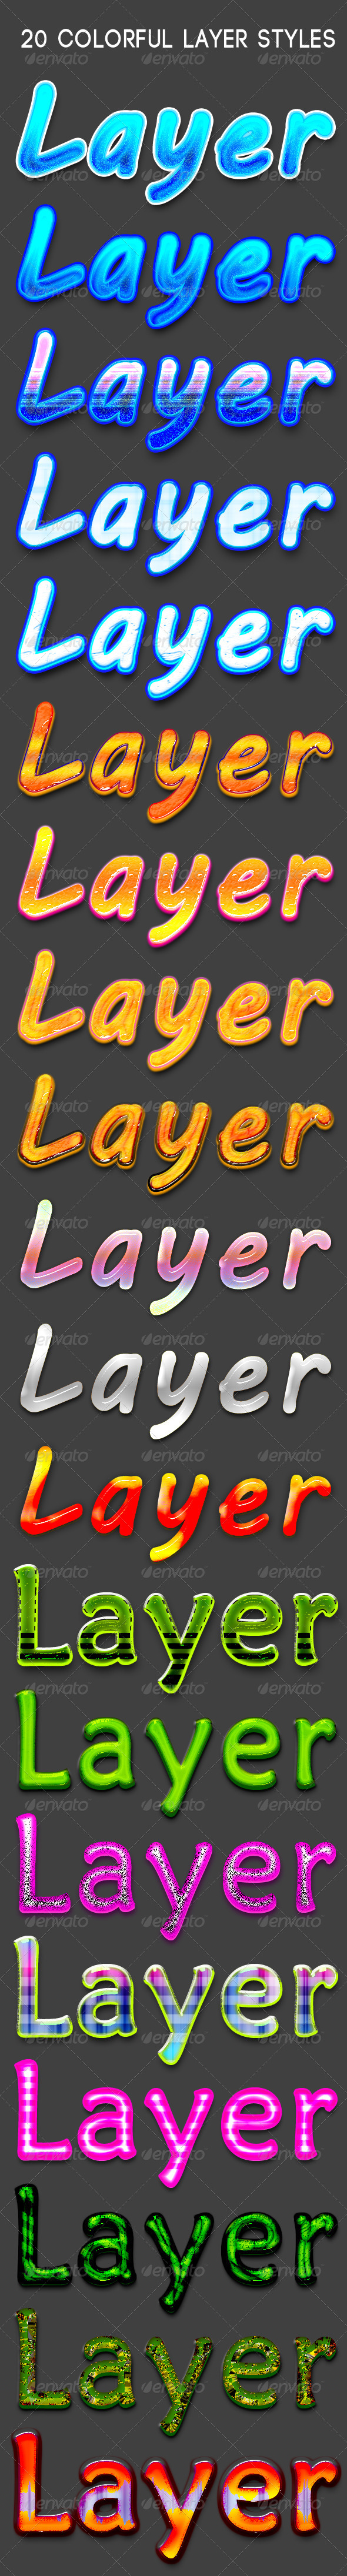 GraphicRiver 20 Colorful layer Styles 7012272